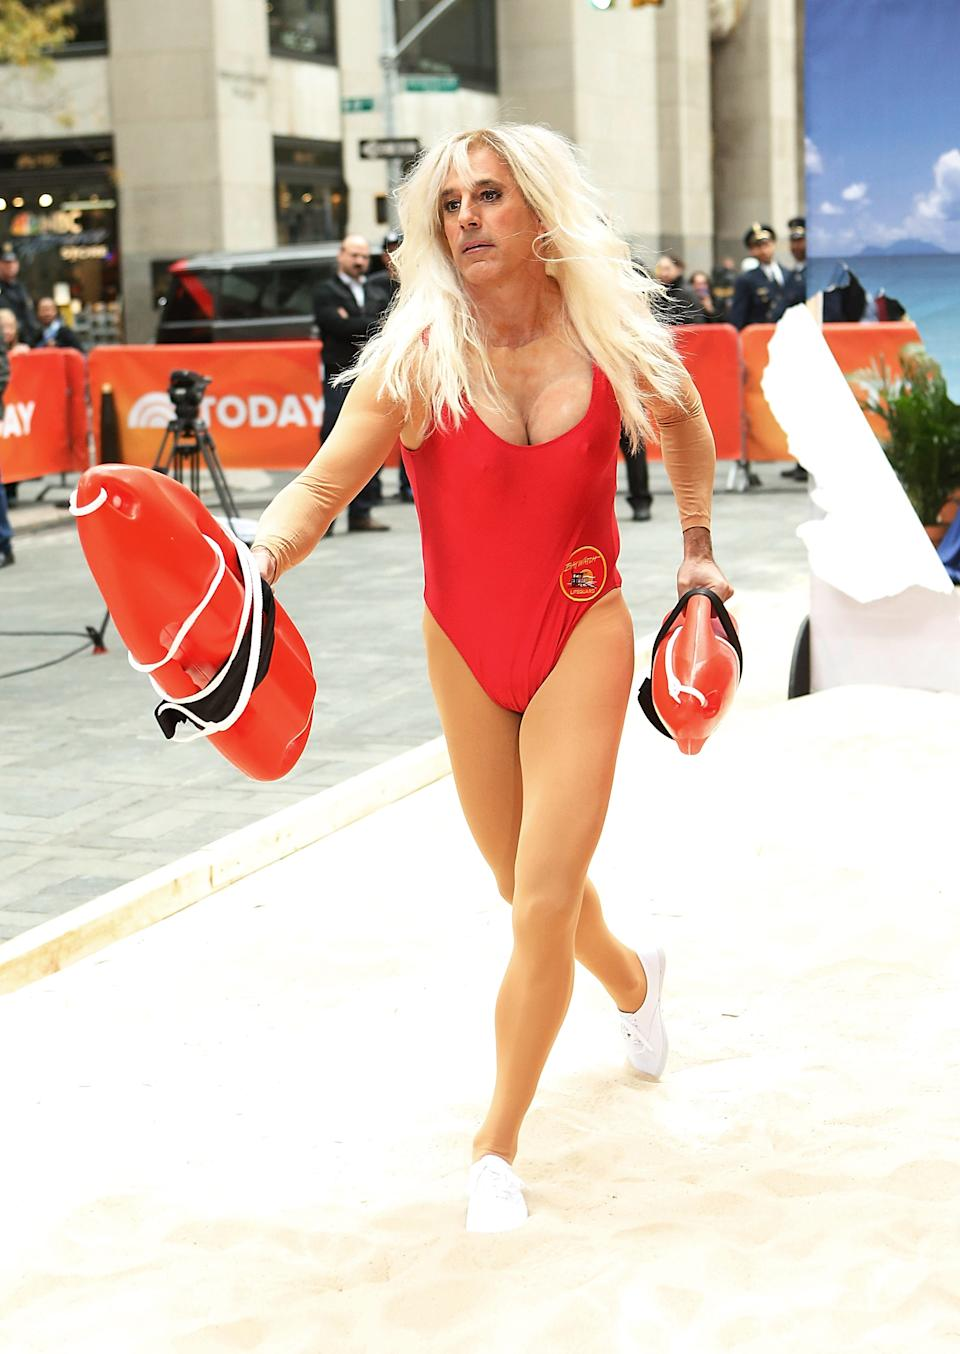 <strong>Matt Lauer as Pamela Anderson on <em>Baywatch</em></strong><br><br>For <em>Today</em>'s 2013 Halloween bash, Lauer ran onstage in the classic <em>Baywatch </em>red one-piece.